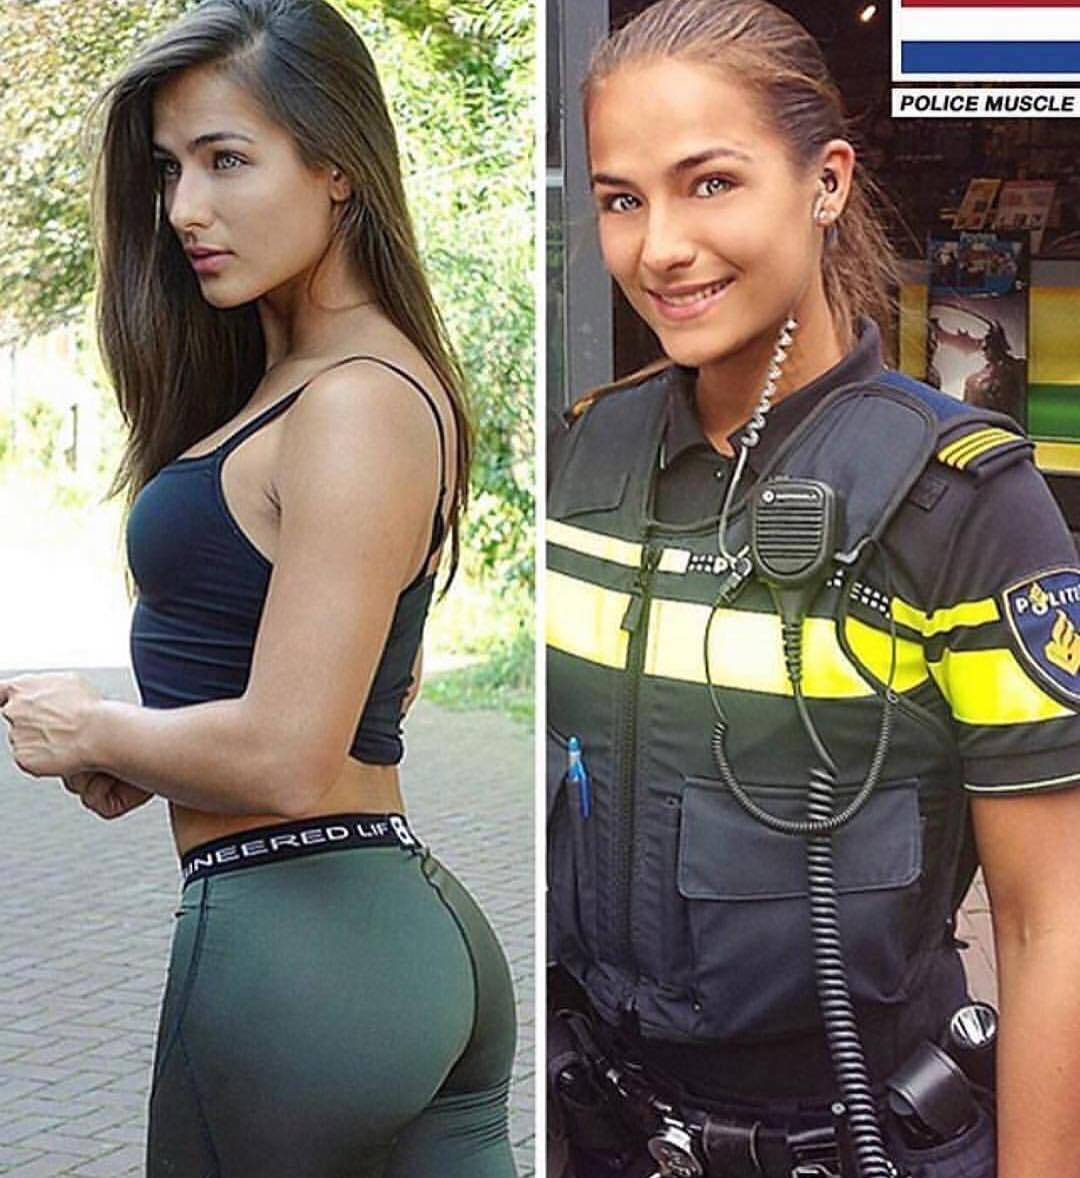 10 Hottest Female Officers From All Around The World - Genmice